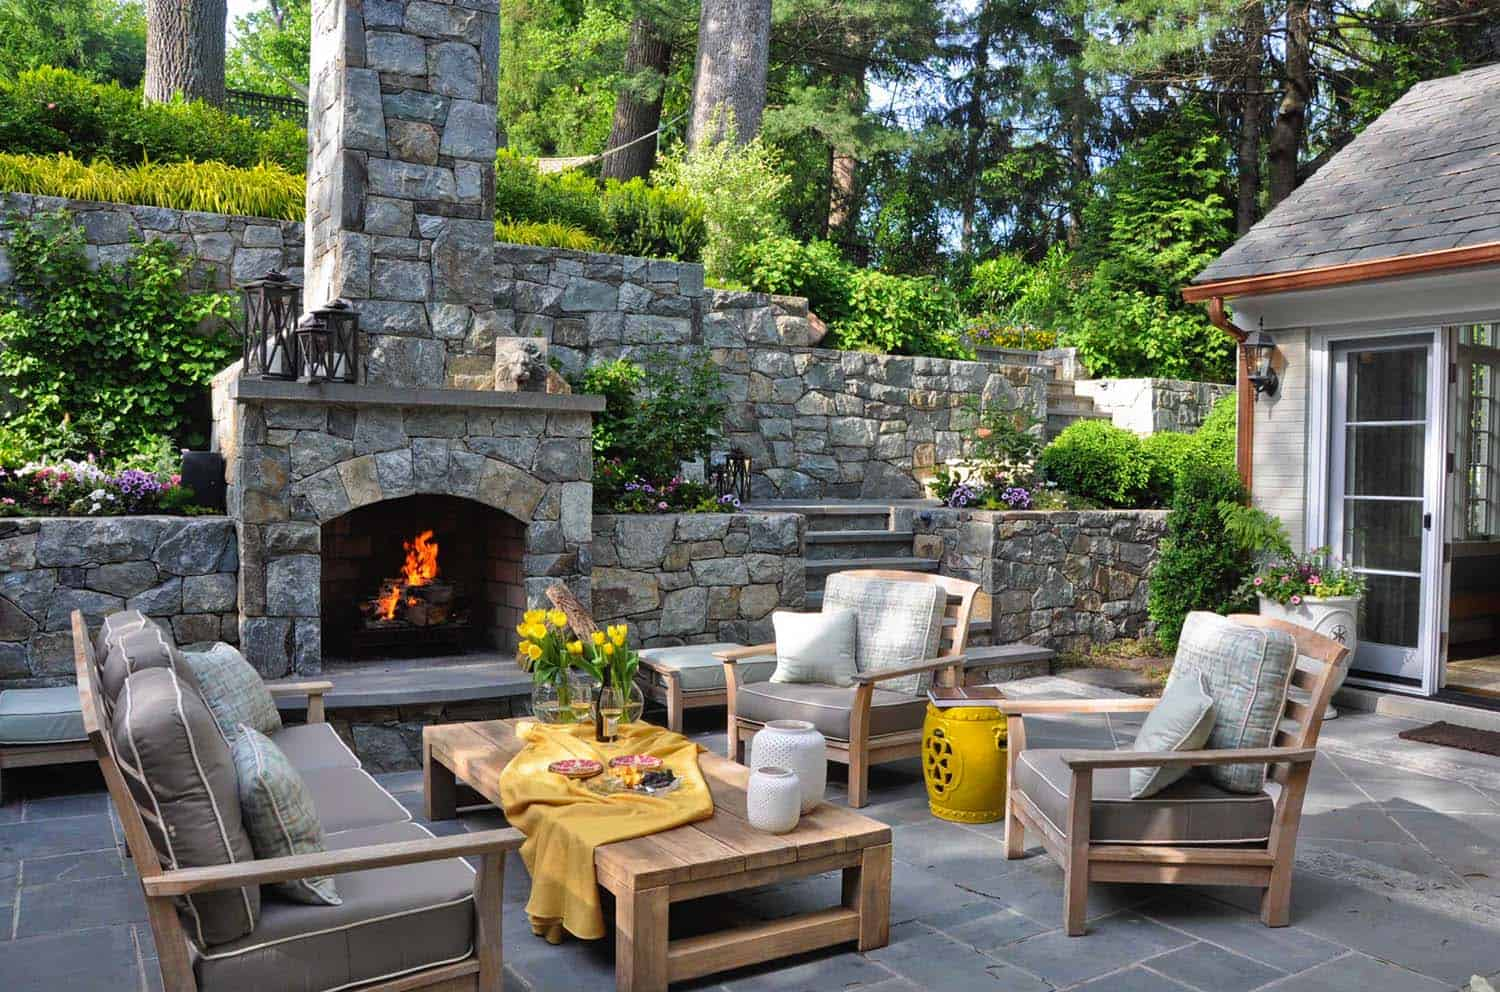 Peterdunham 30 Irresistible Outdoor Fireplace Ideas That Will Leave